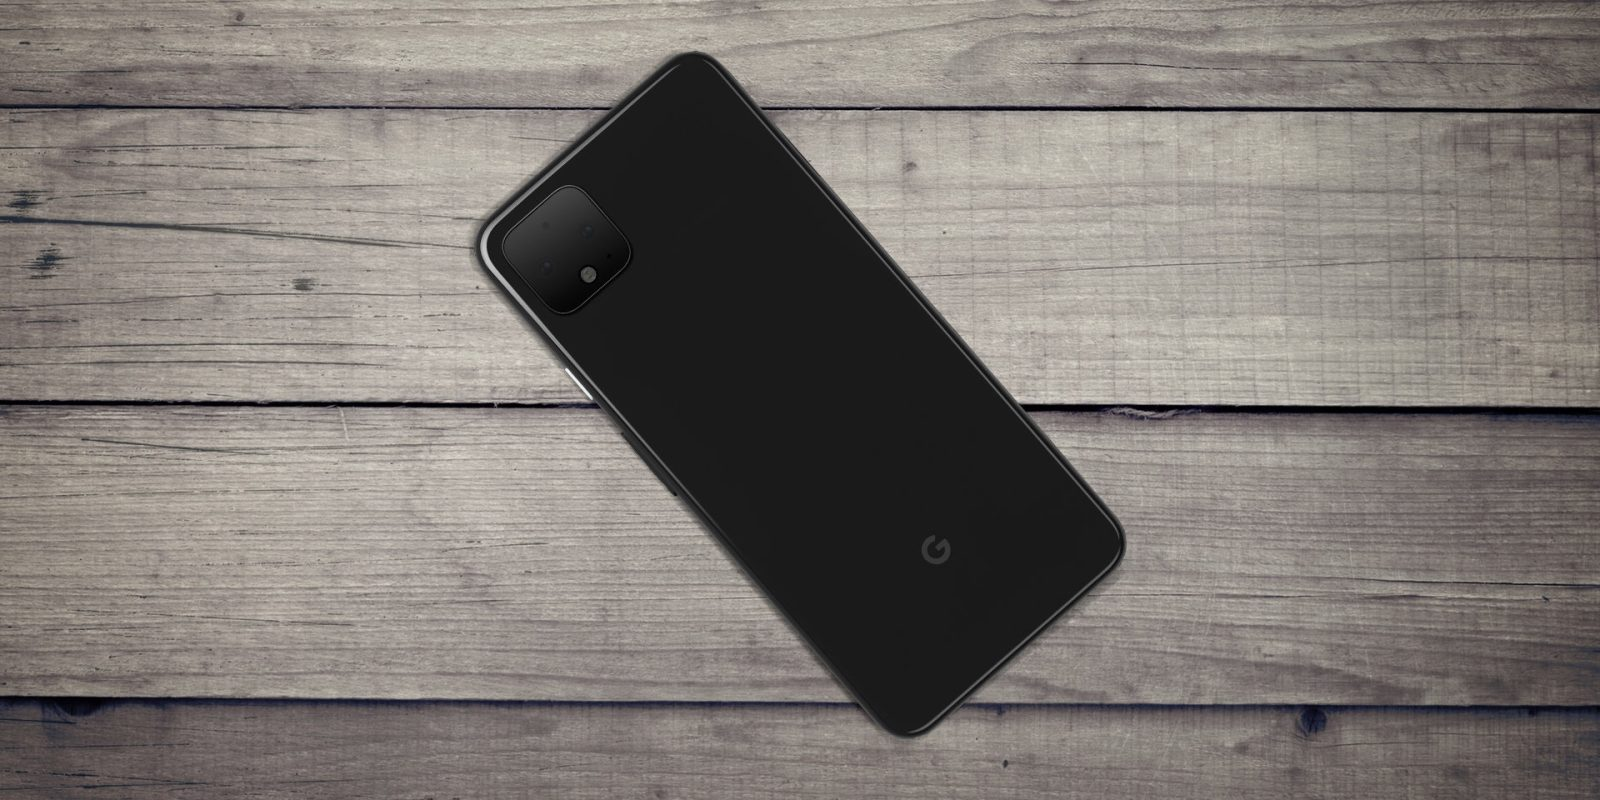 This week's top stories: Google Pixel 4 rumored, spotted, and rendered